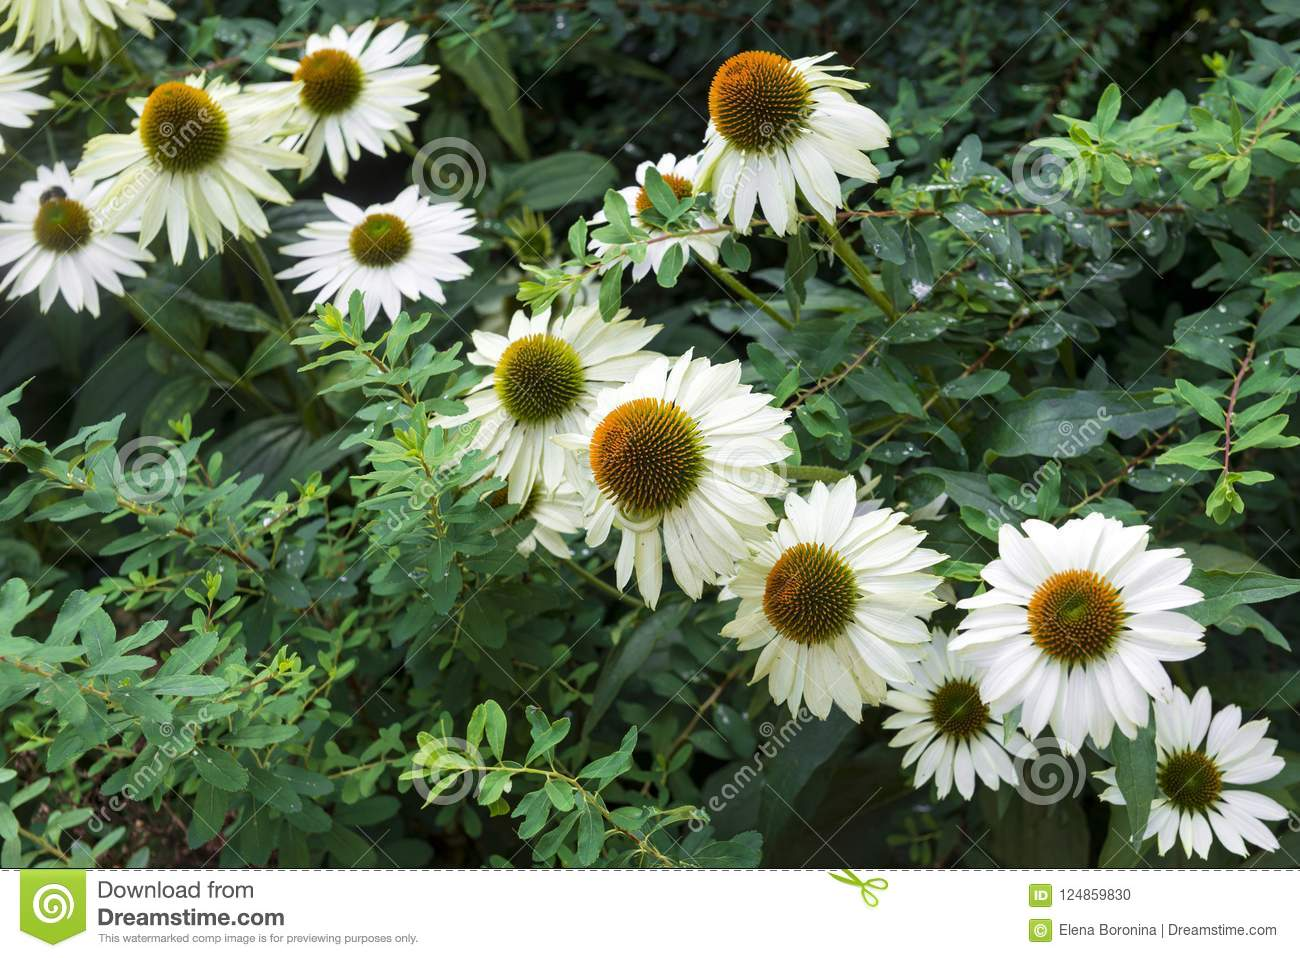 Daisies Garden Flowers With White Petals Among The Greenery Fl